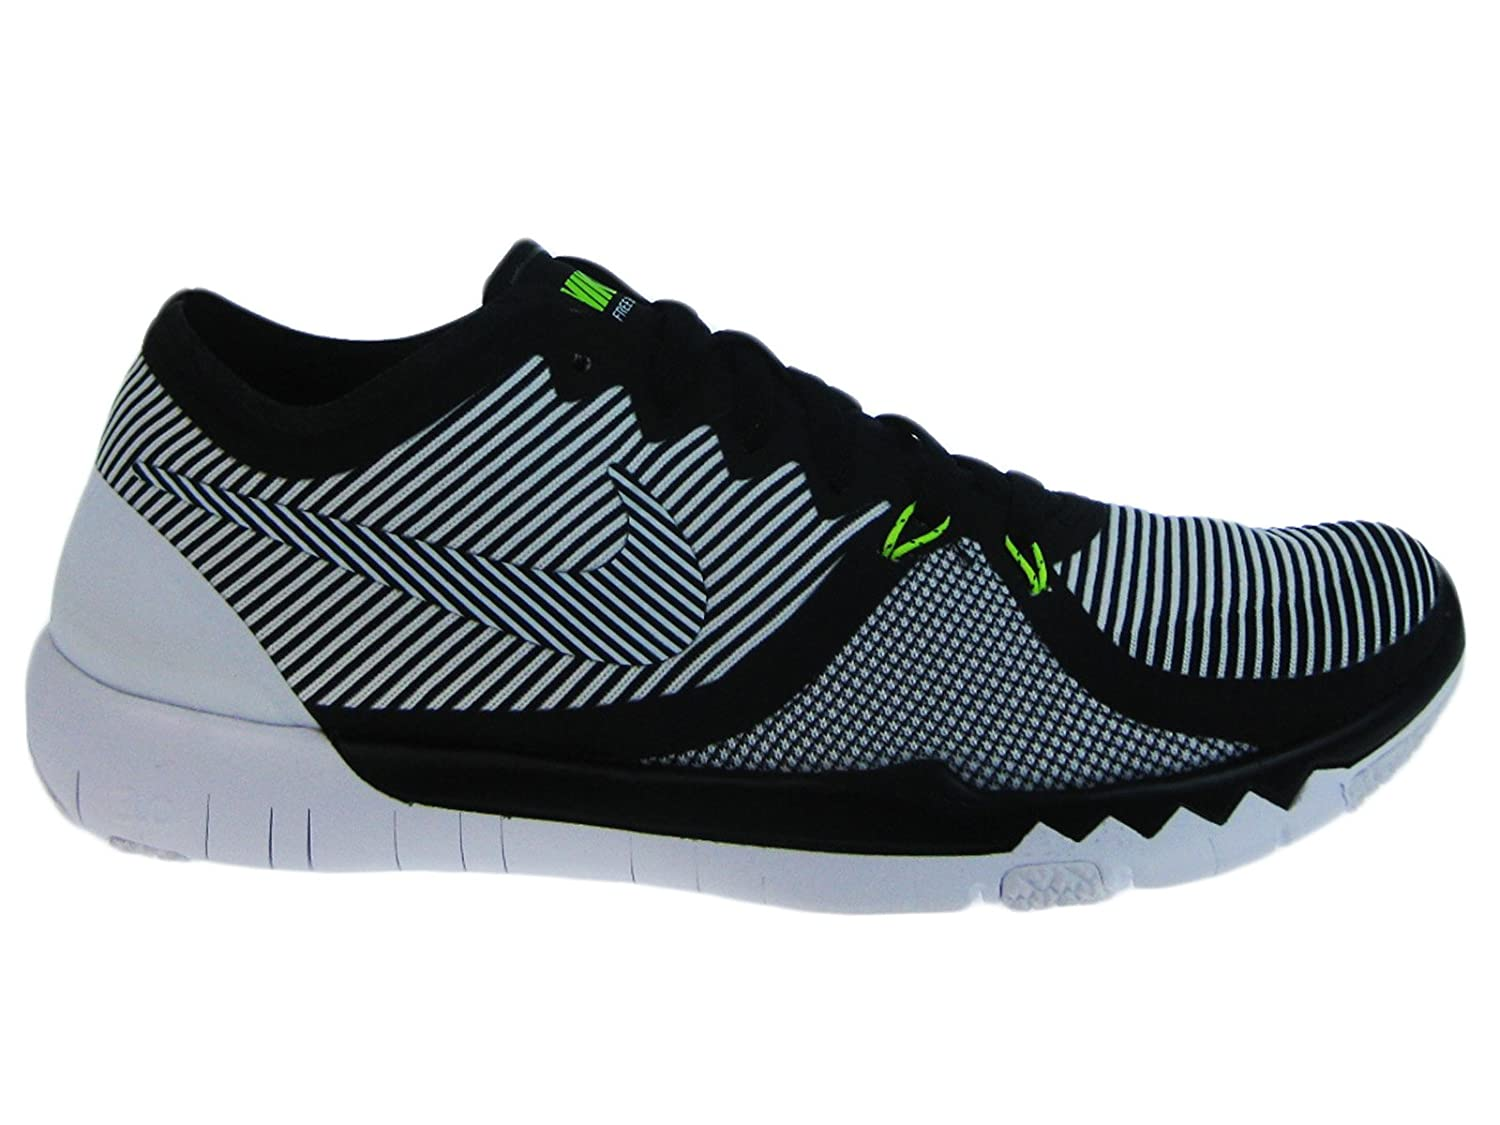 Buy Authentic Cheap Nike Free 3.0 V3 Buy Cheap Nike Shoes Outlet Online